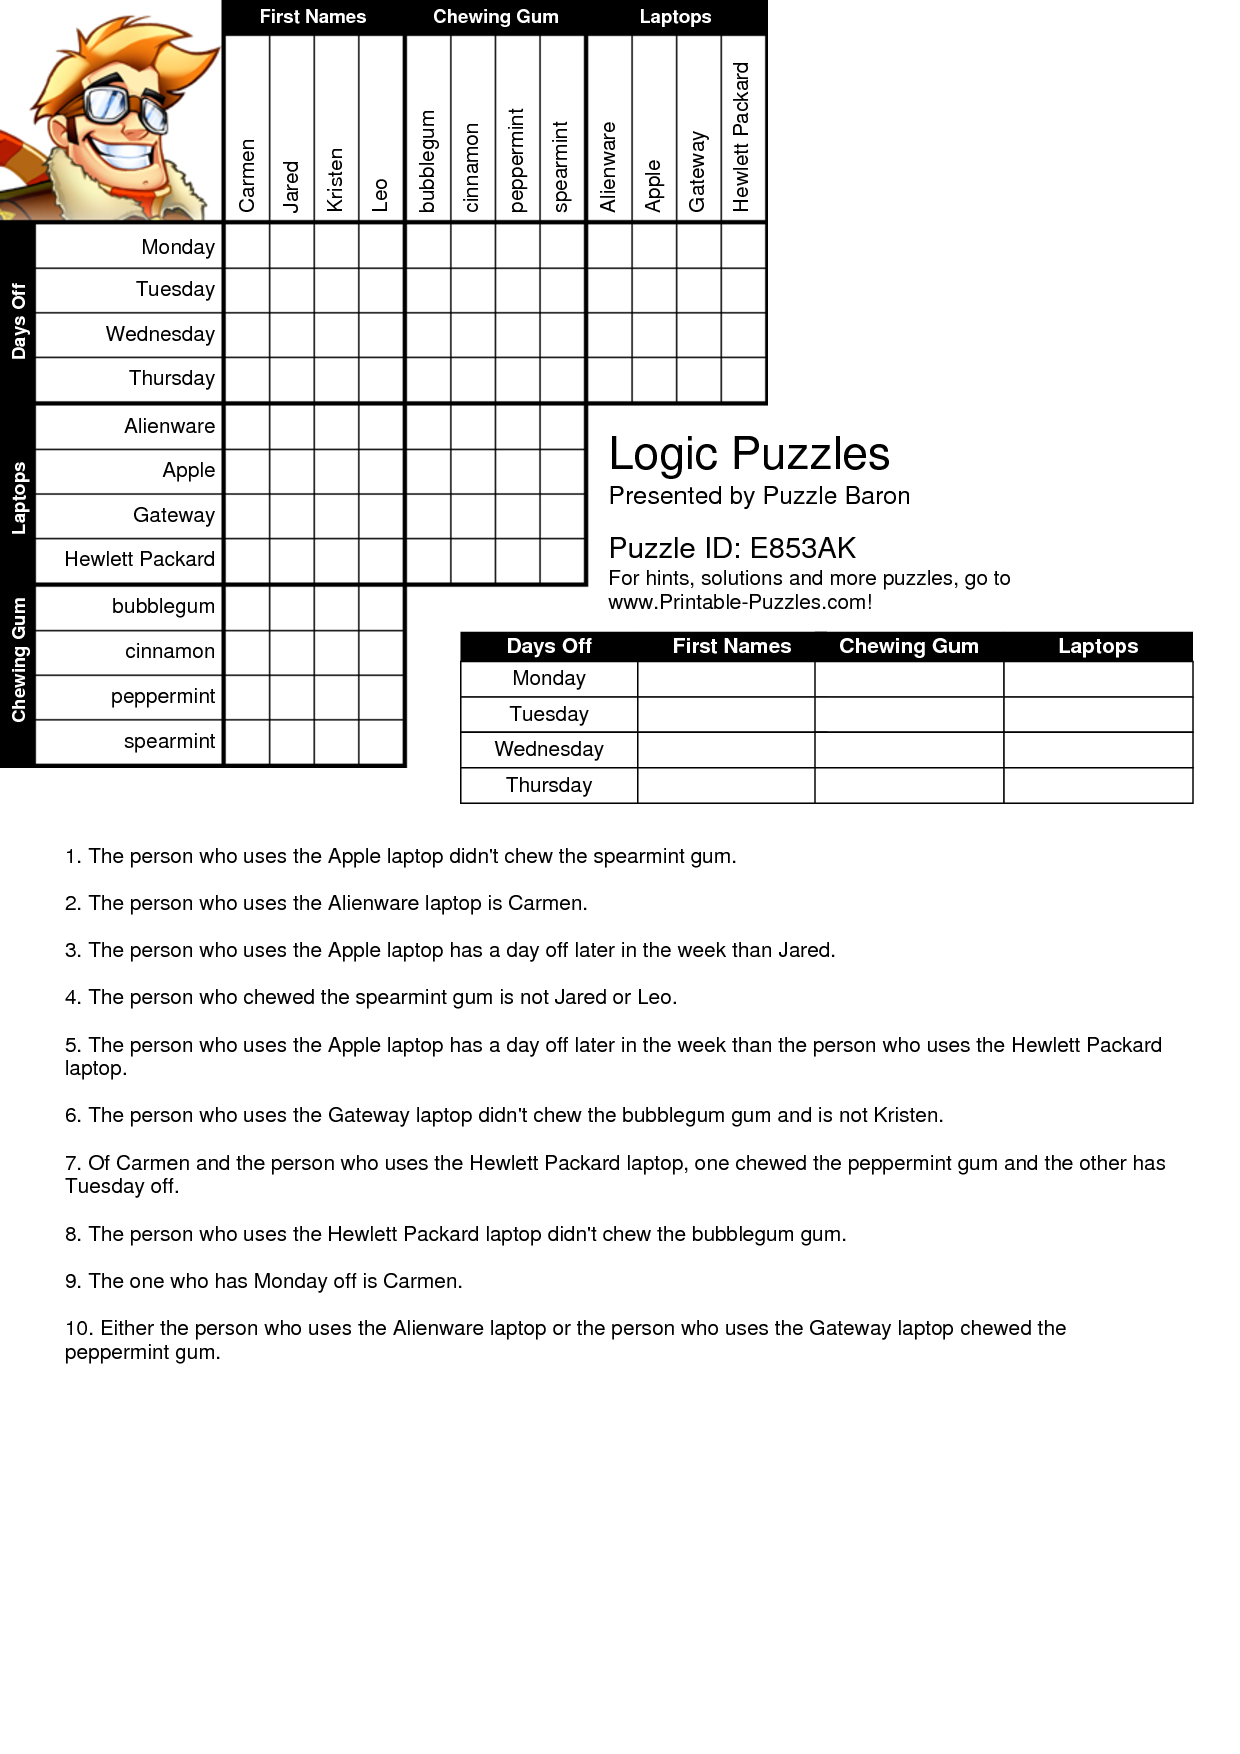 photograph about Printable Logic Puzzles known as Printable Logic Puzzles BnuAUyPI Childrens Arts Crafts